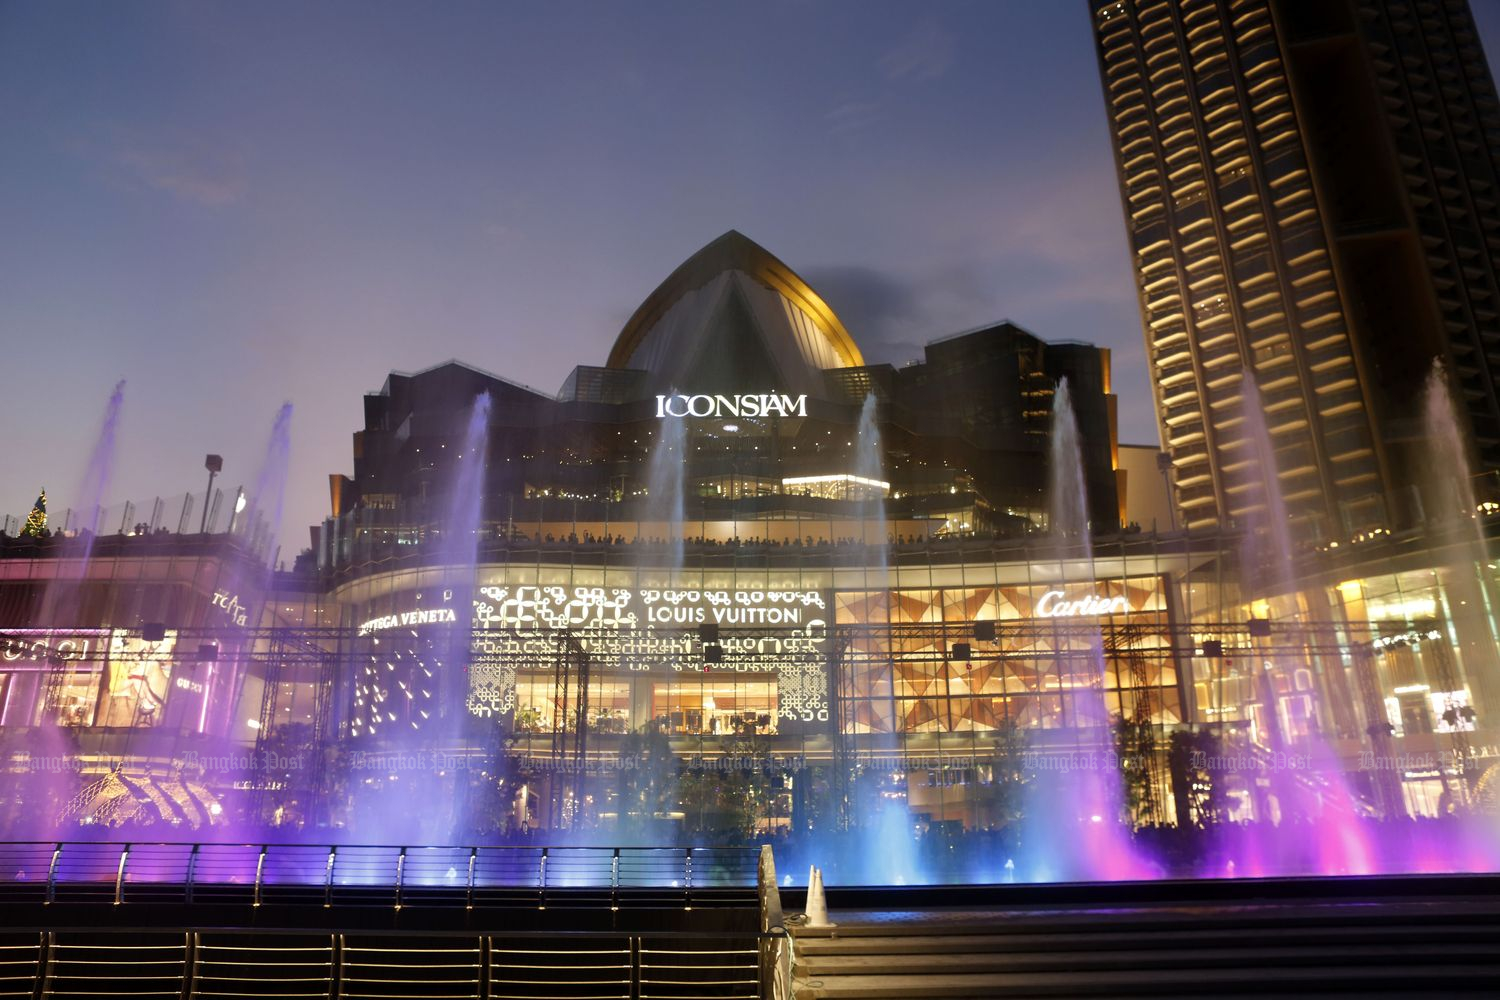 Events such as this Iconic Multimedia Water Features by Iconsiam late in 2018 give people reasons to get dressed and shop at brick-and-mortar malls. (Bangkok Post file photo)